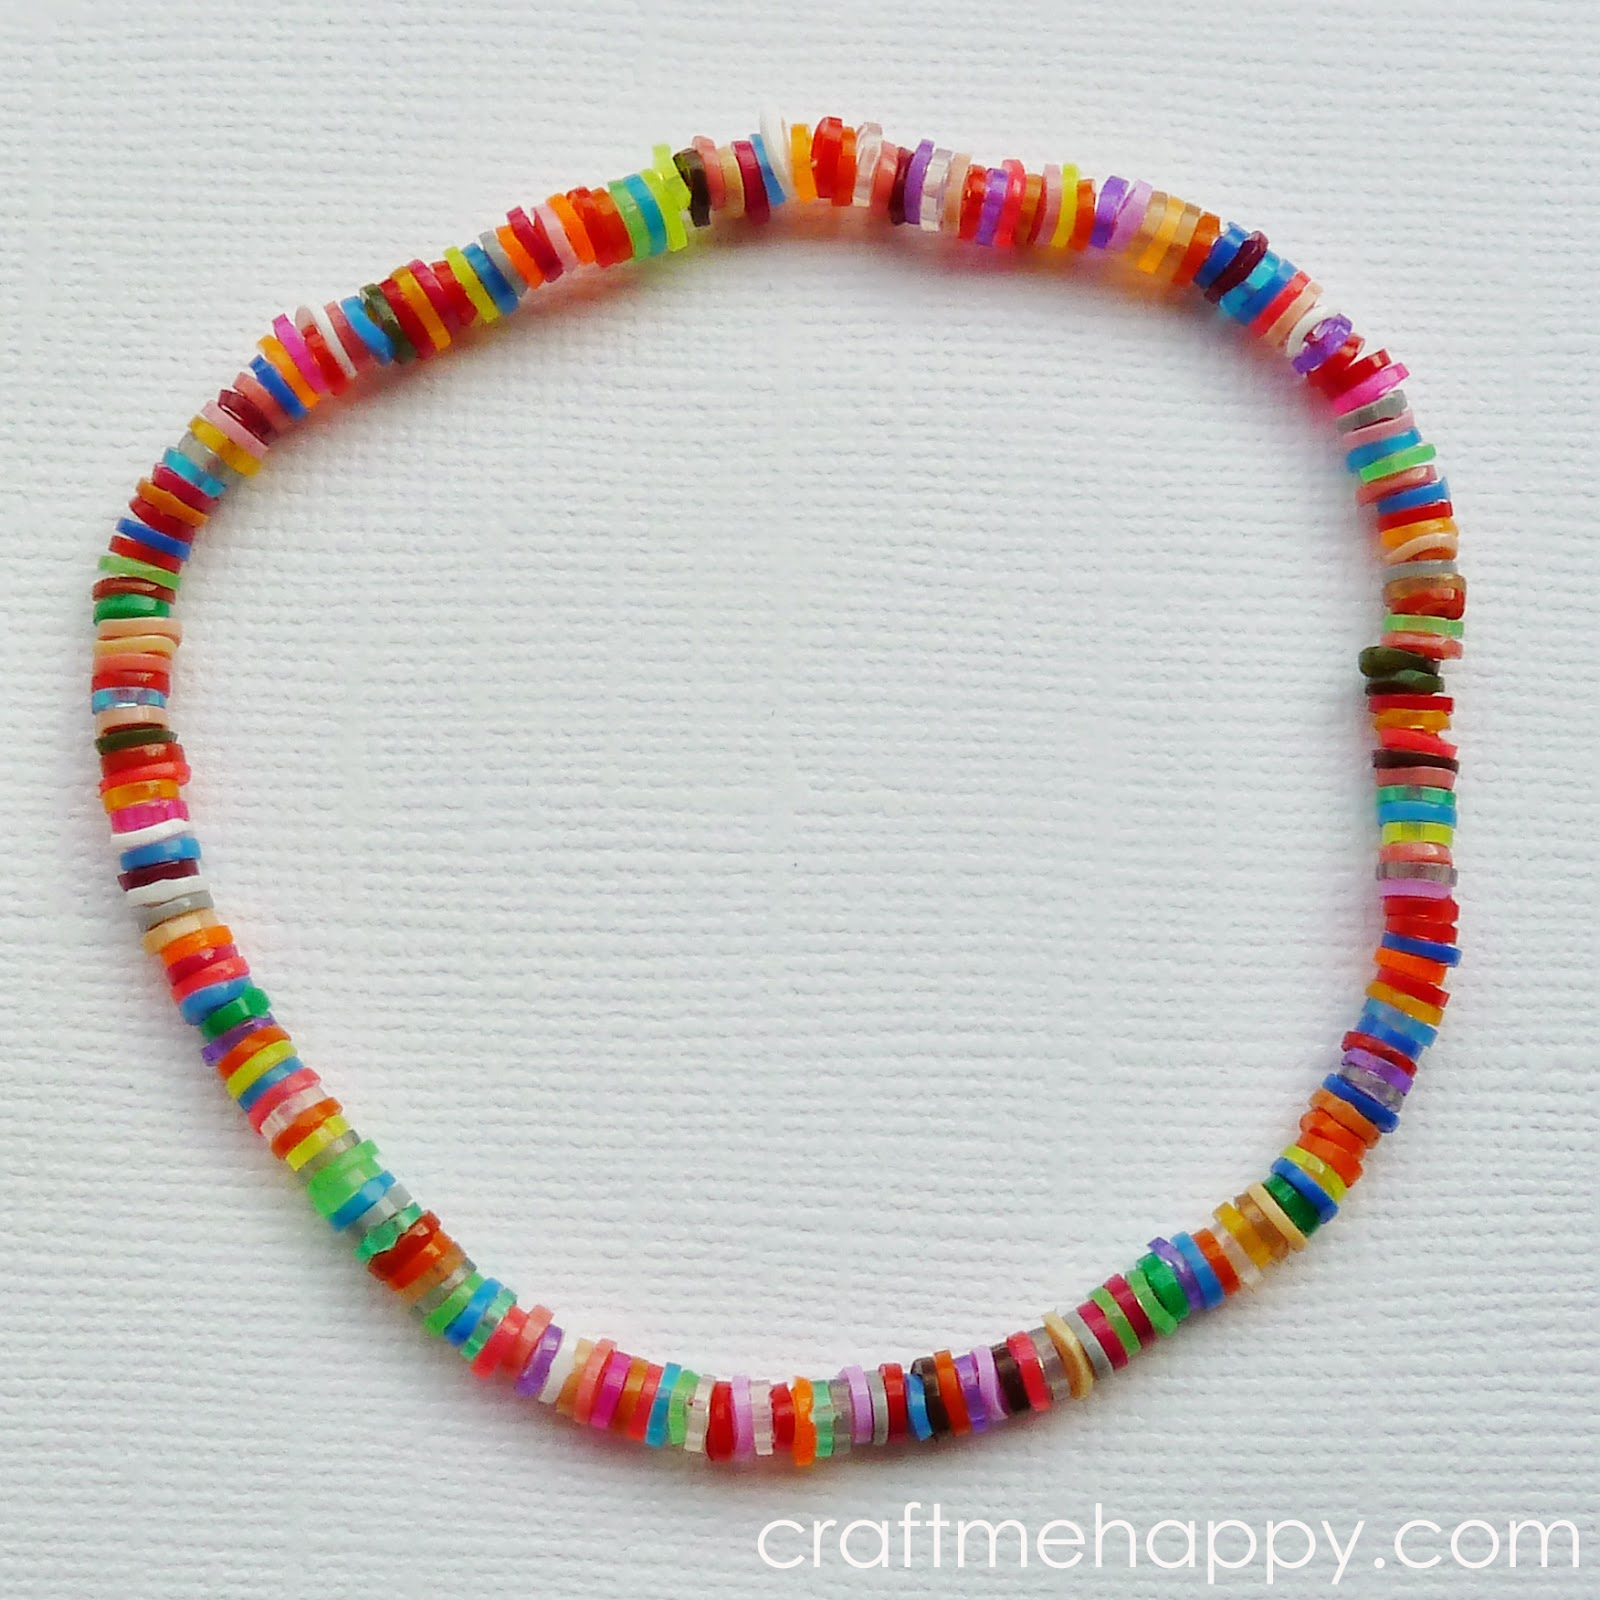 melting hama perler beads bead me bracelet mini happy craft montage